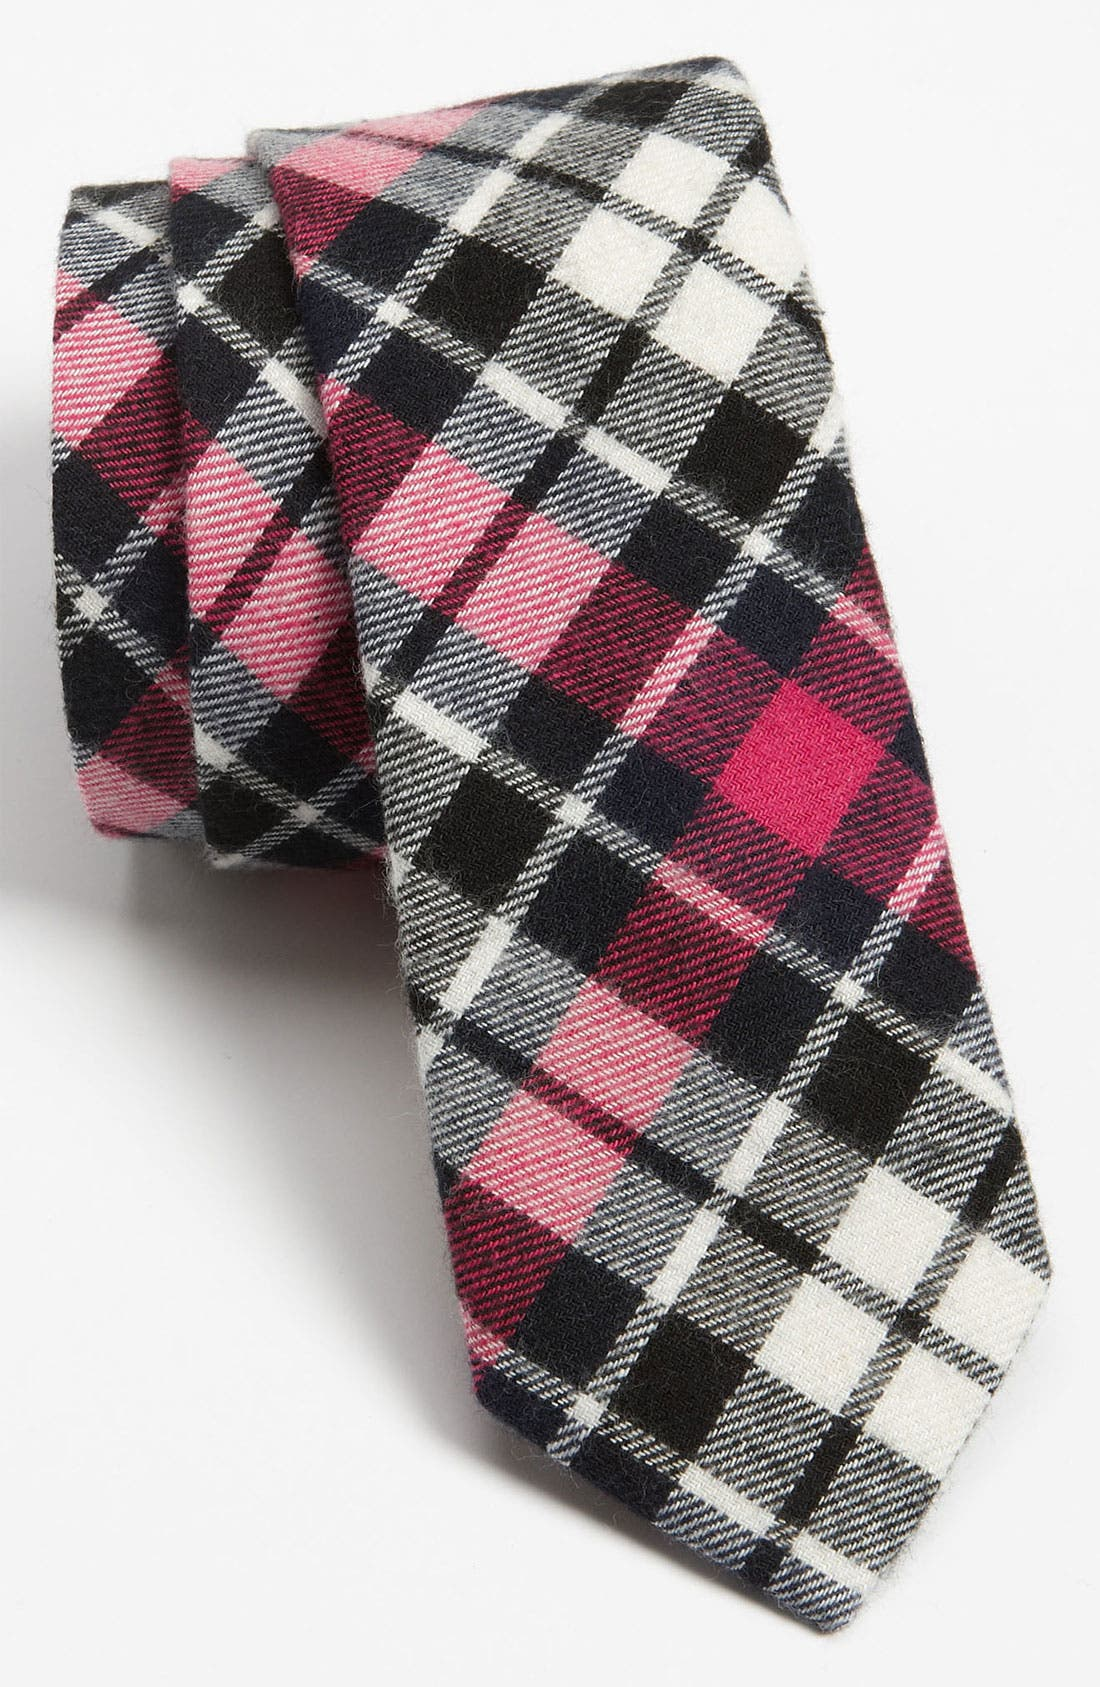 Alternate Image 1 Selected - The Tie Bar Woven Cotton Tie (Online Exclusive)